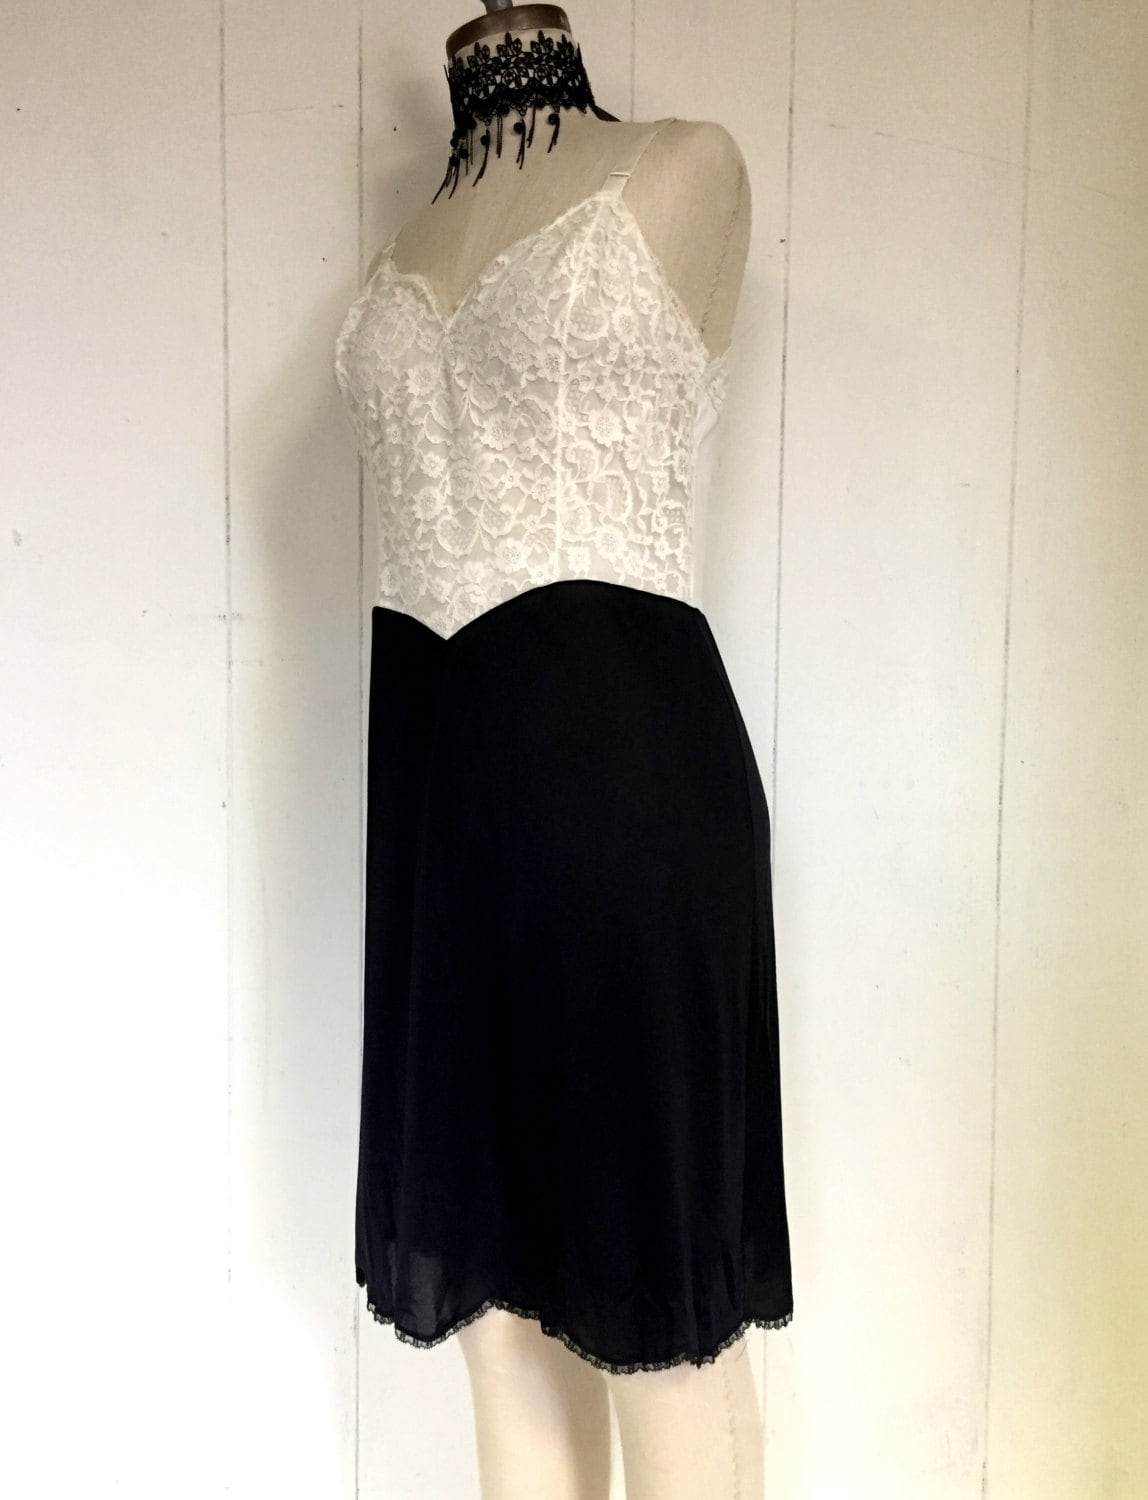 White Lace Black Sexy Negligee Nightgown Dress Lingerie Slip